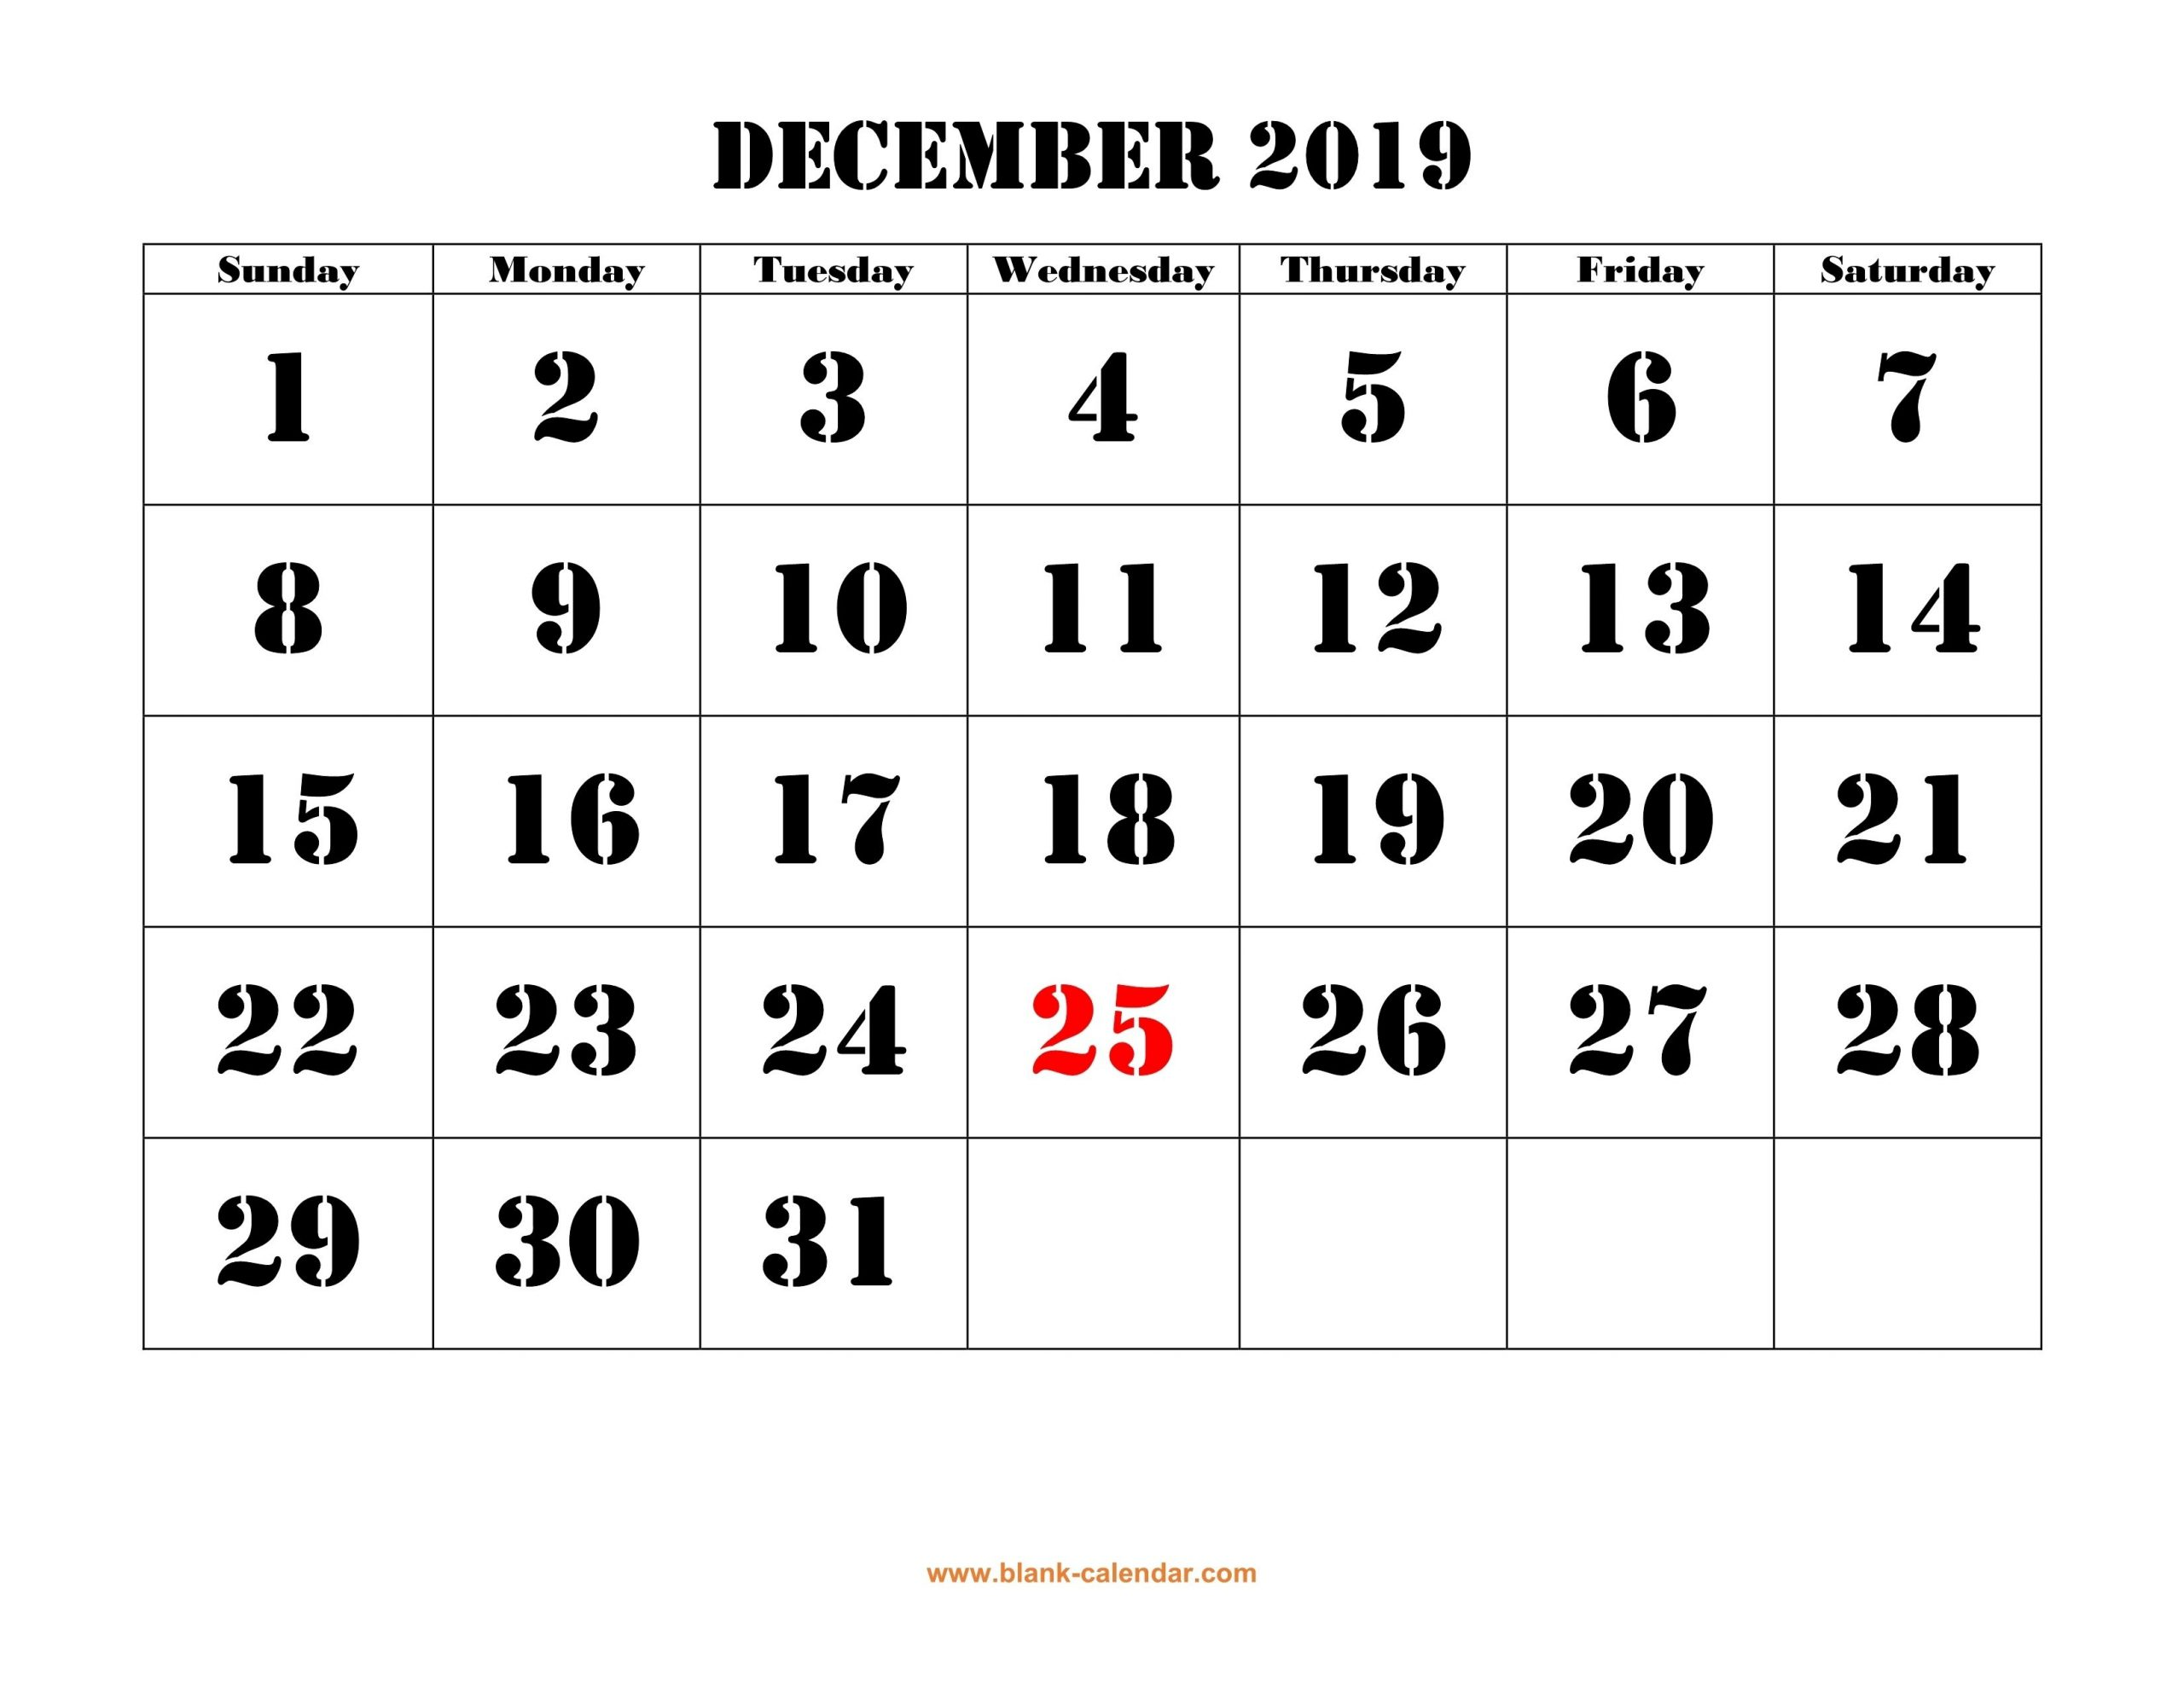 Free Download Printable December 2019 Calendar, Large Font